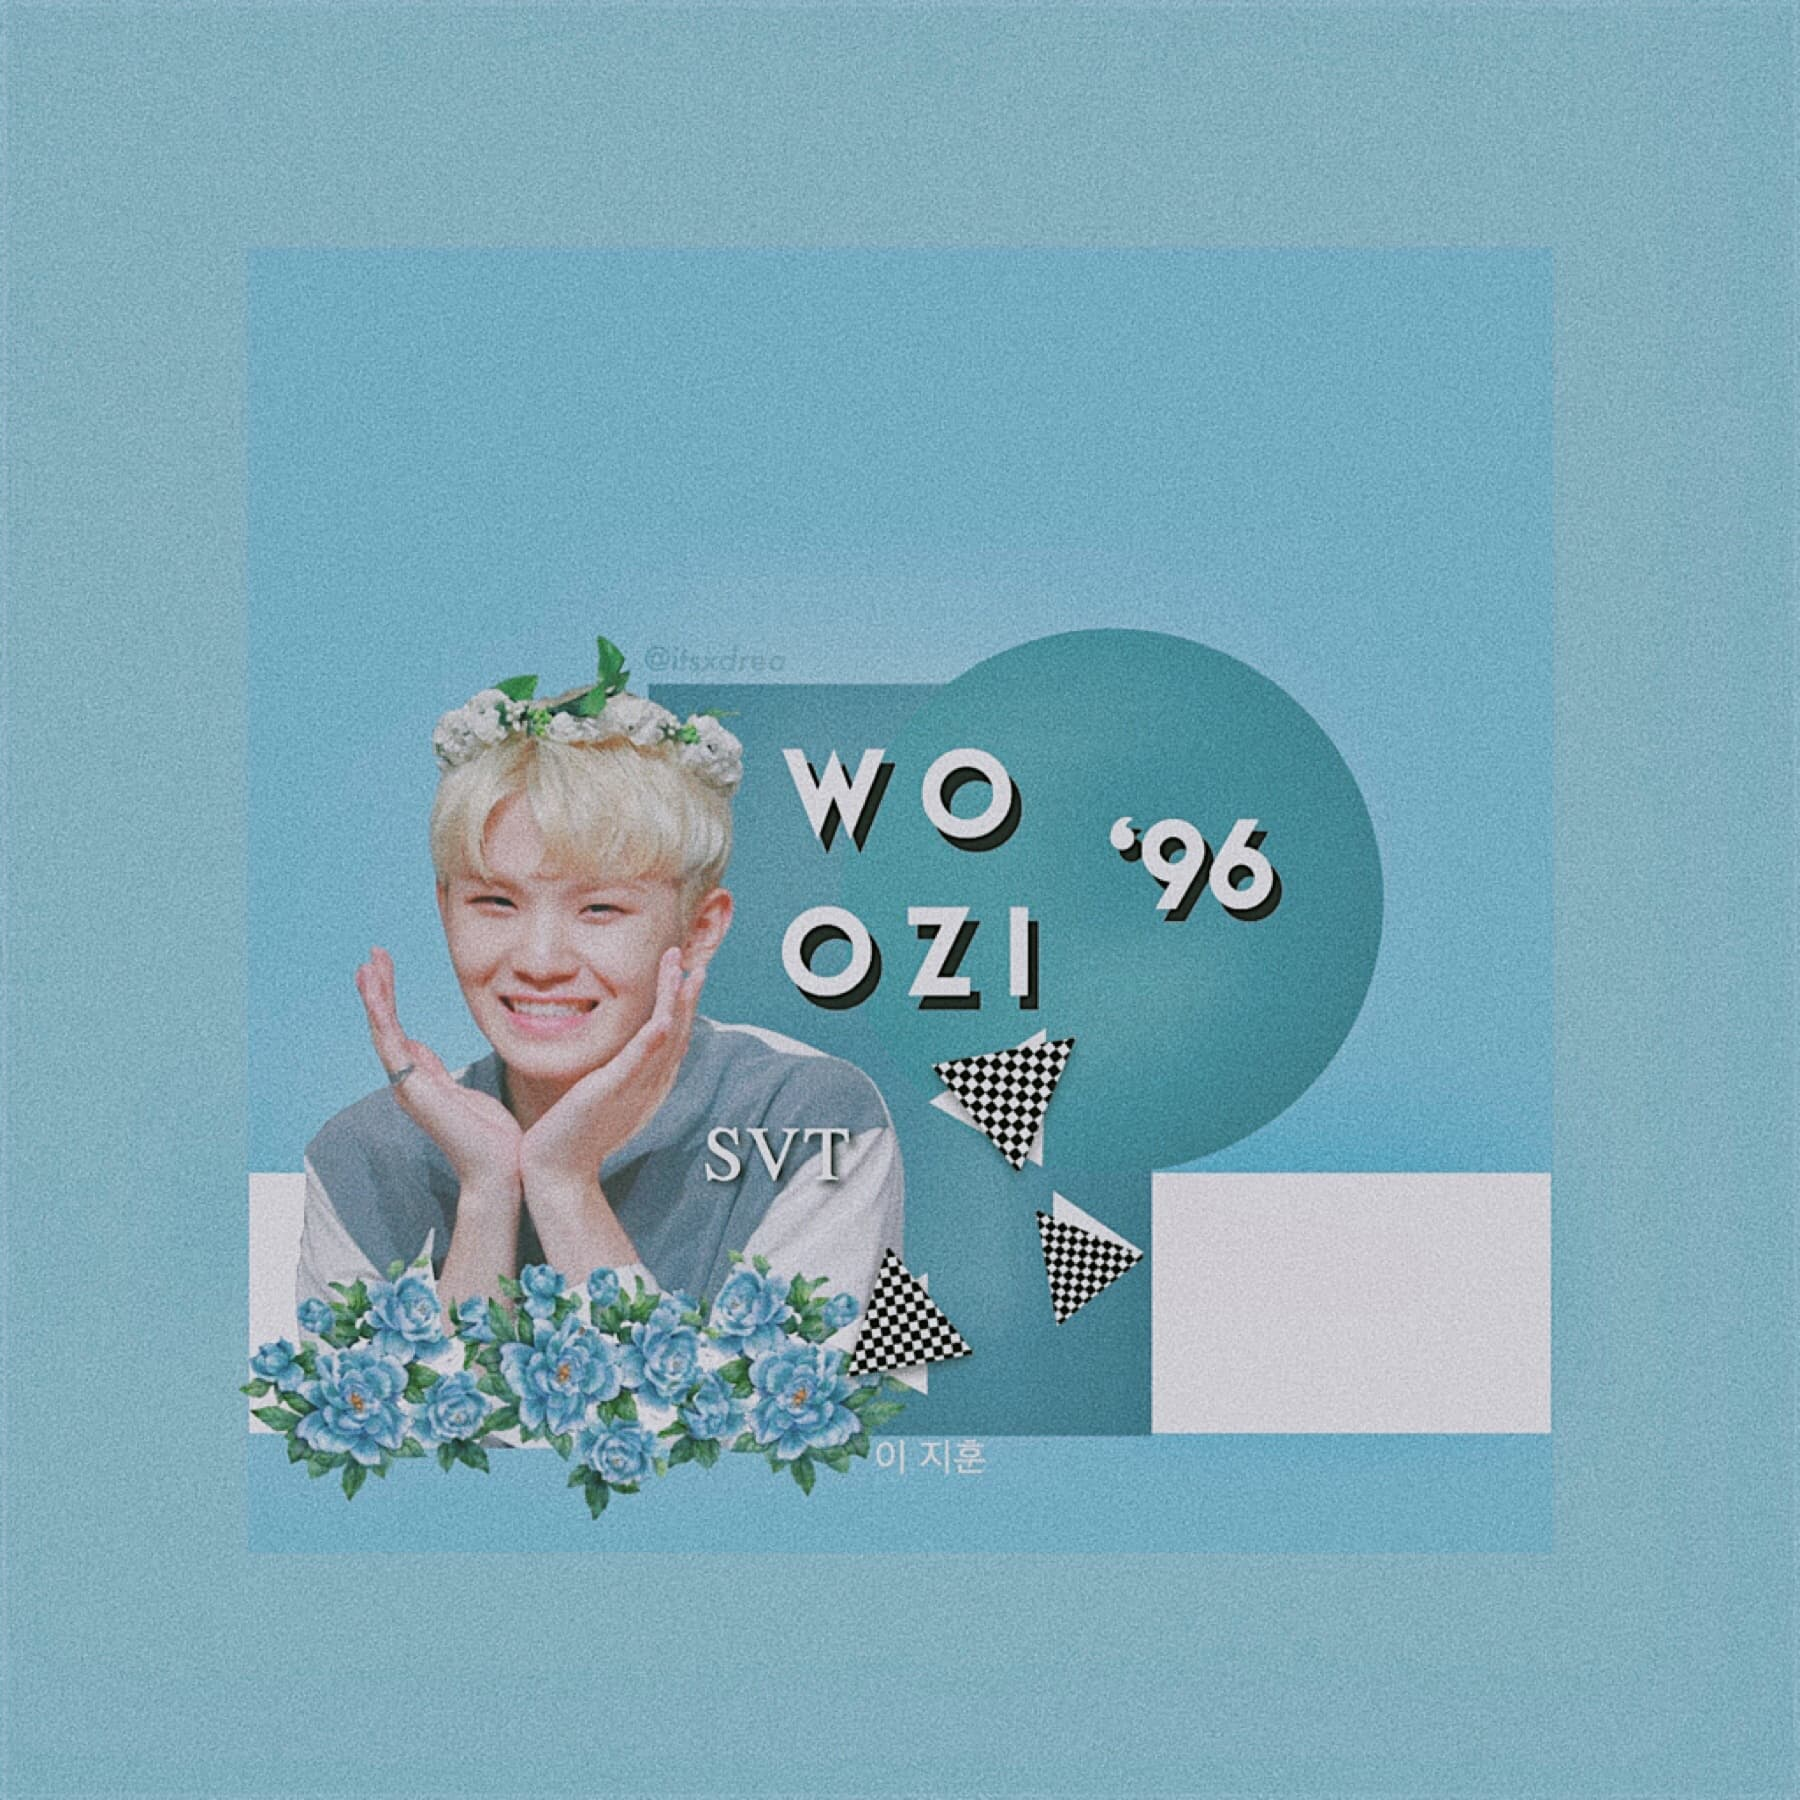 🧚 • woozi // svt • > edit request for @stariicloud < STOP I JUST FINISHED MY FIRST DAY OF SCHOOL AND LEMME TELL YOU, I WILL BE PASSING 😀